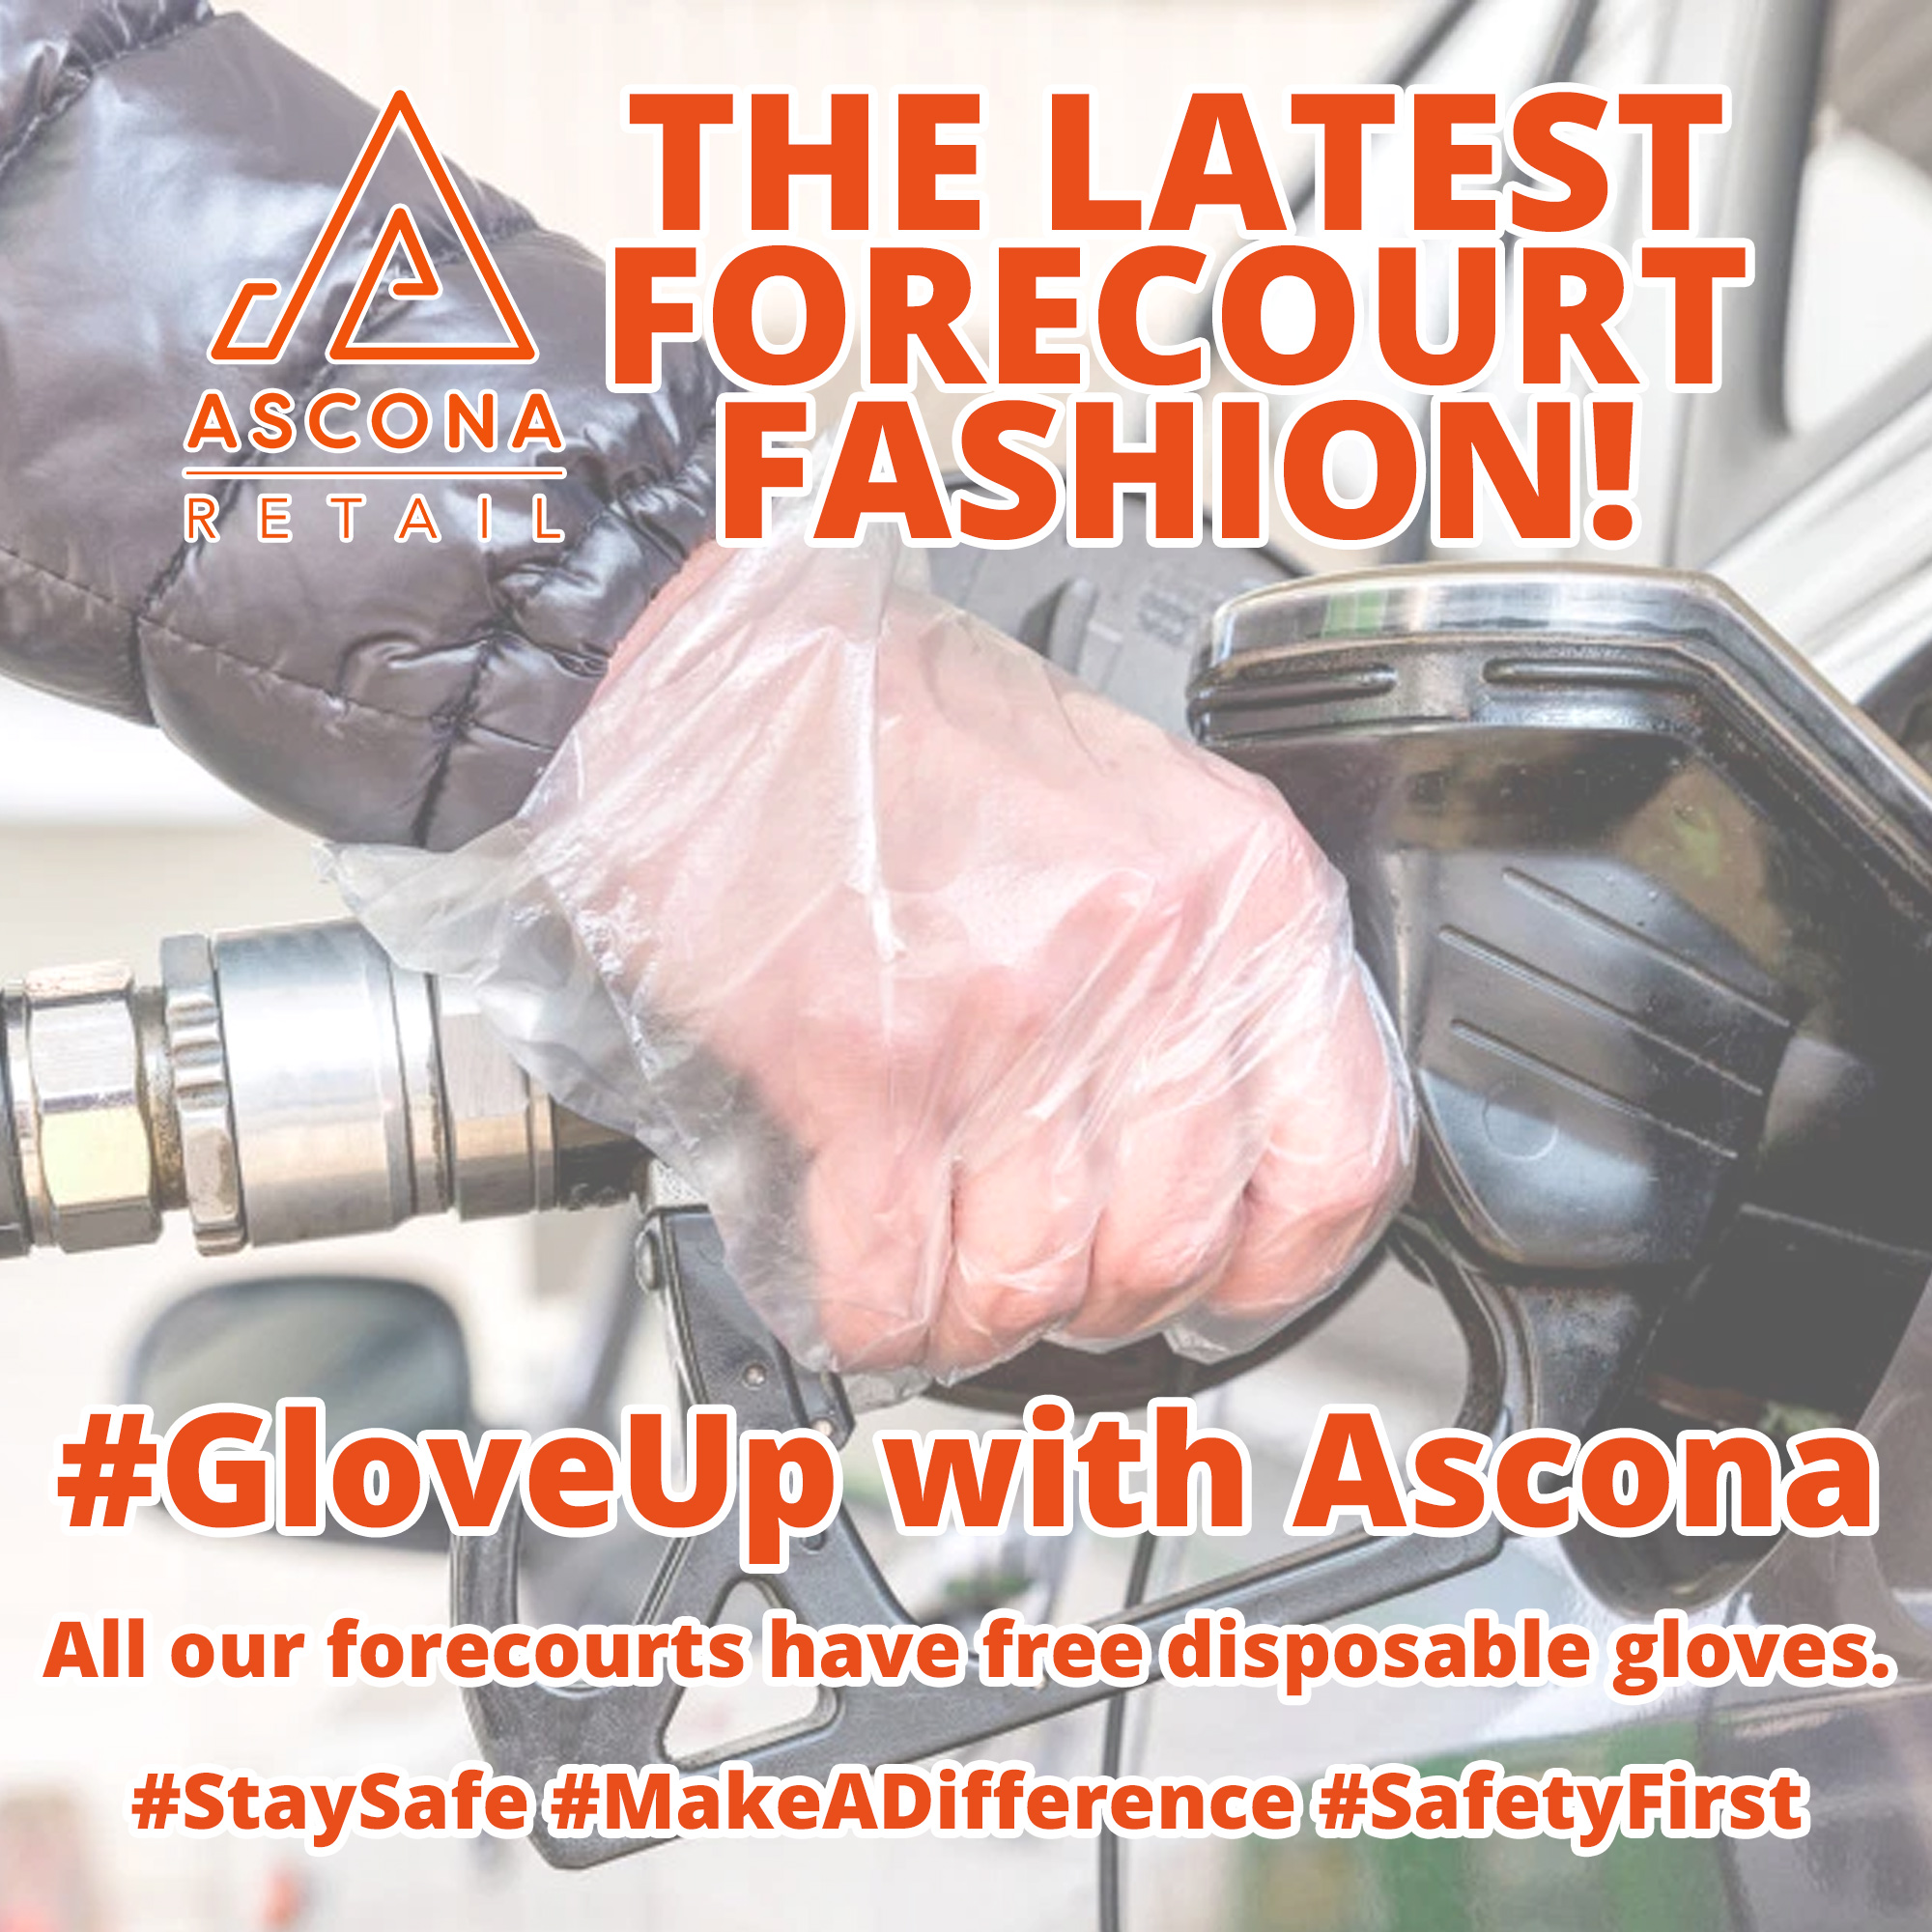 All Ascona forecourts have disposable gloves